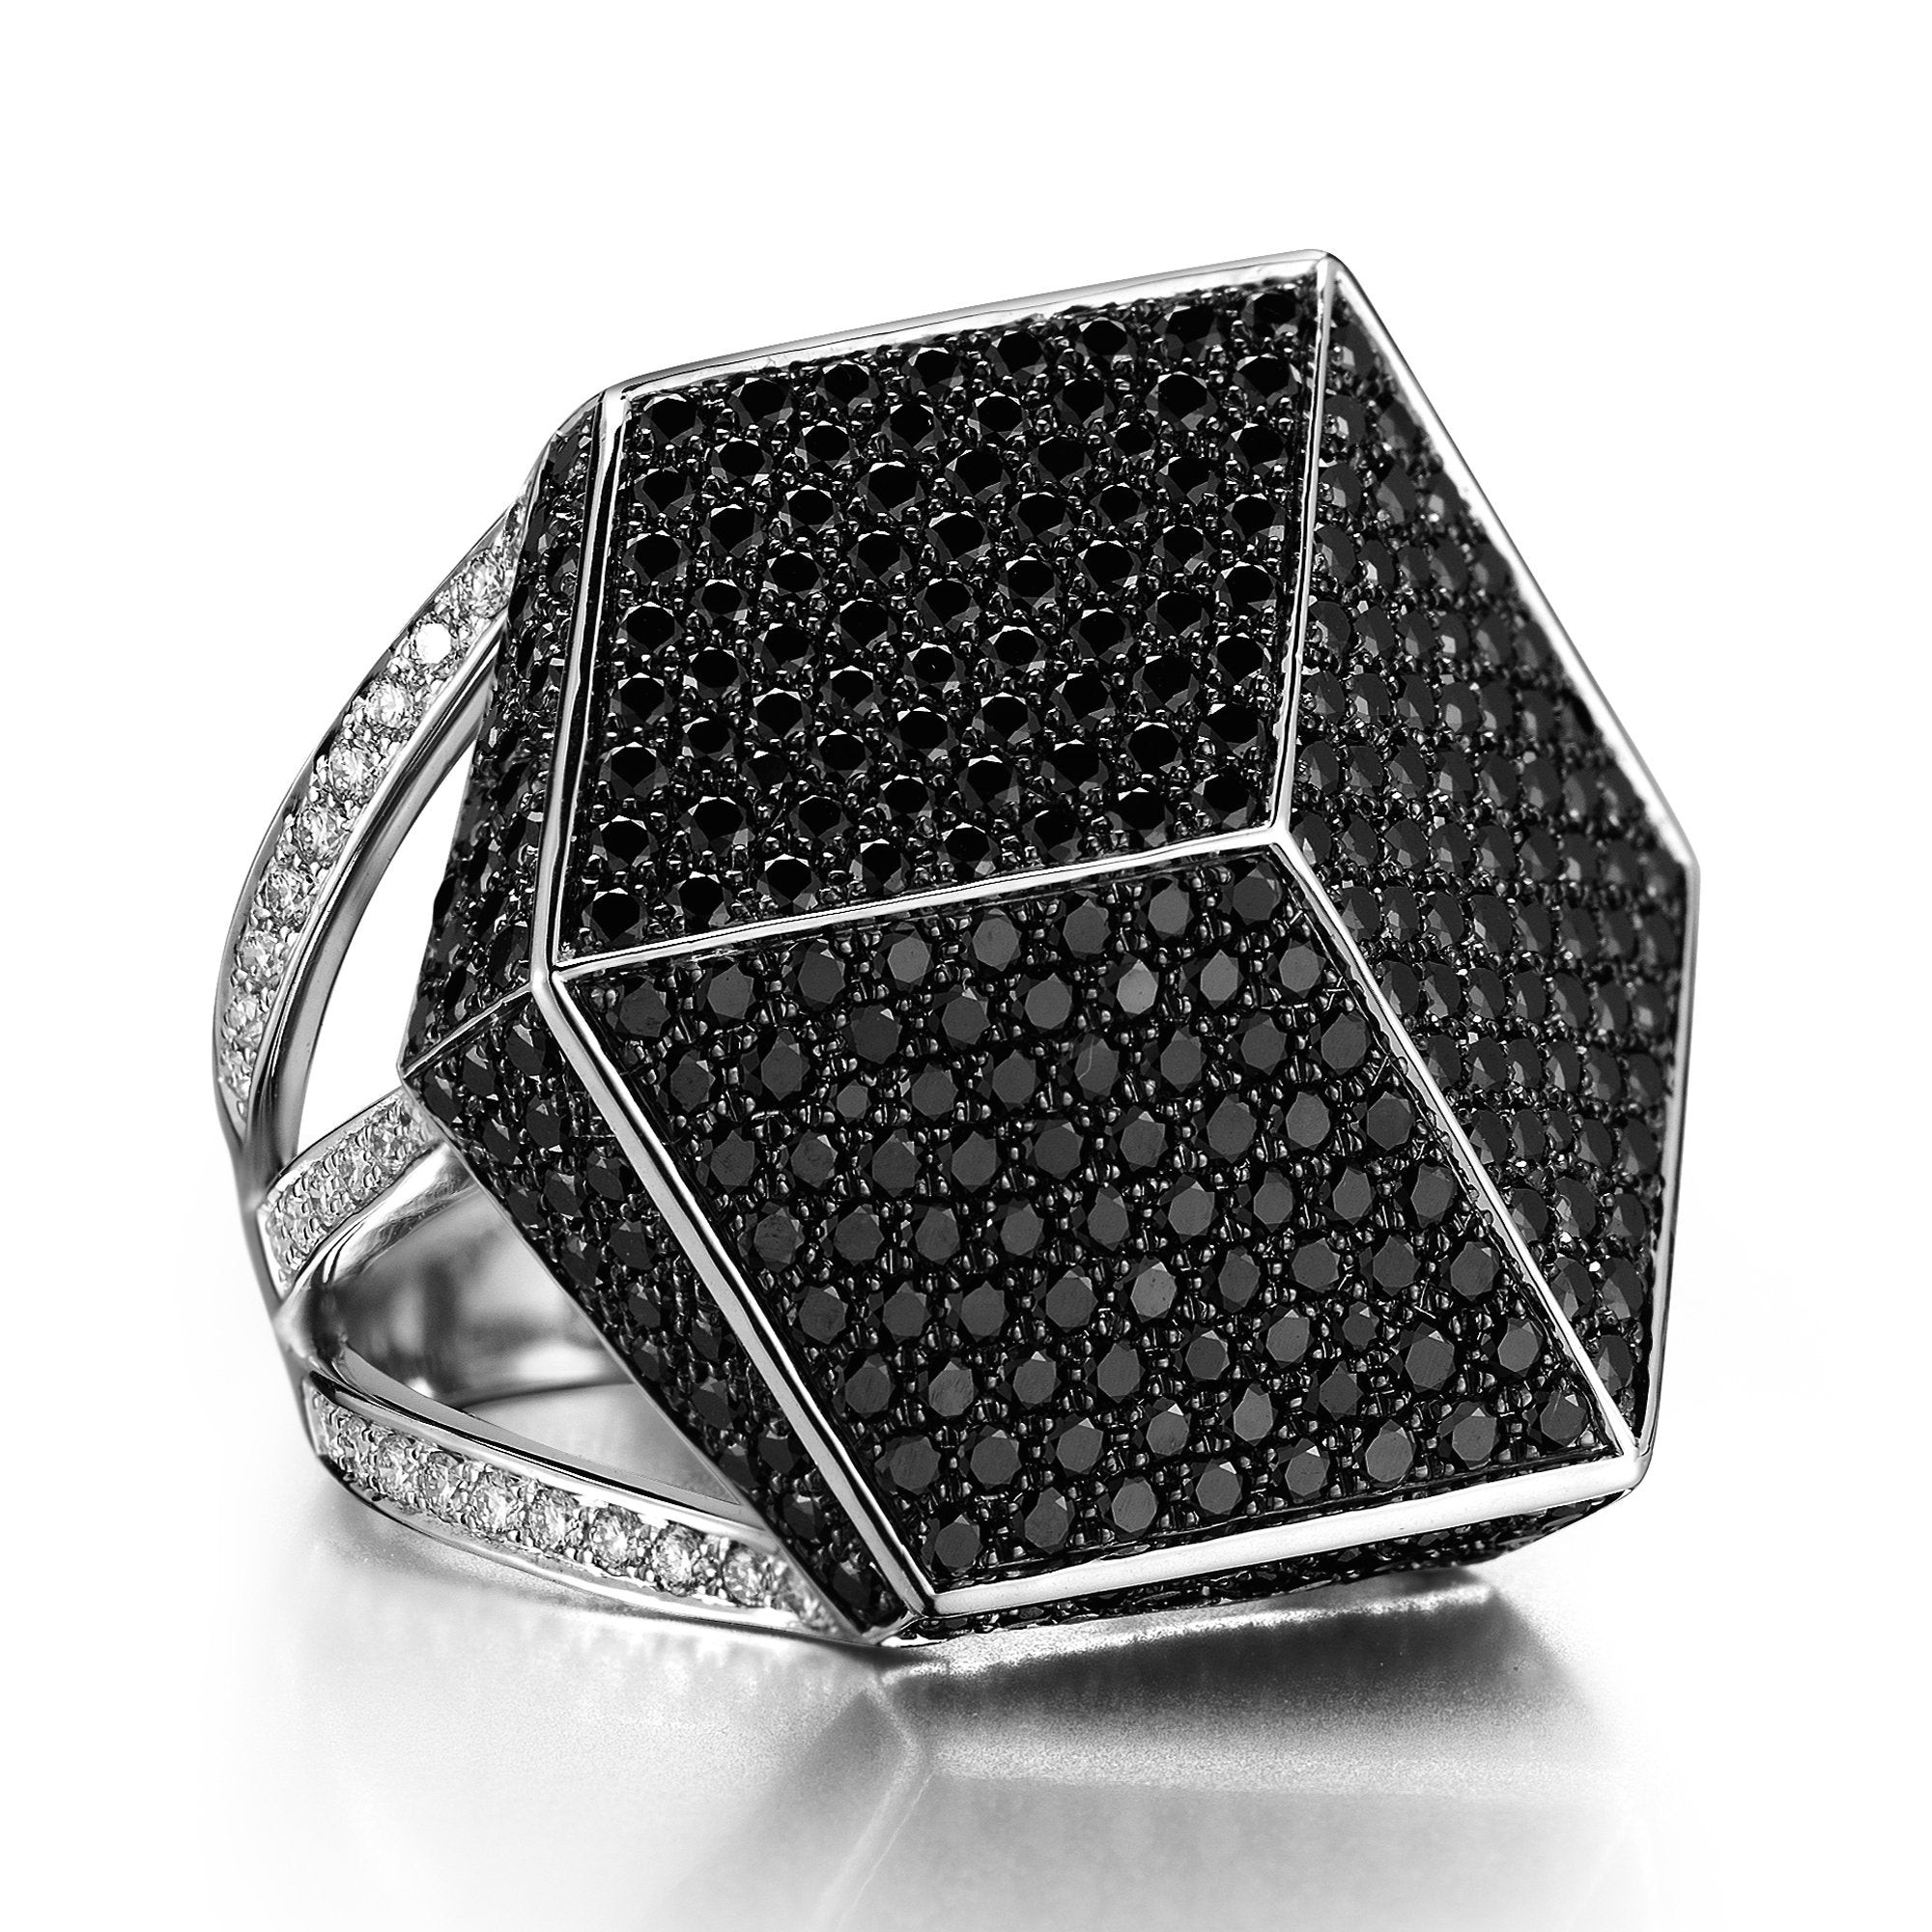 Black Diamond Cocktail Ring - Paolo Costagli - 1